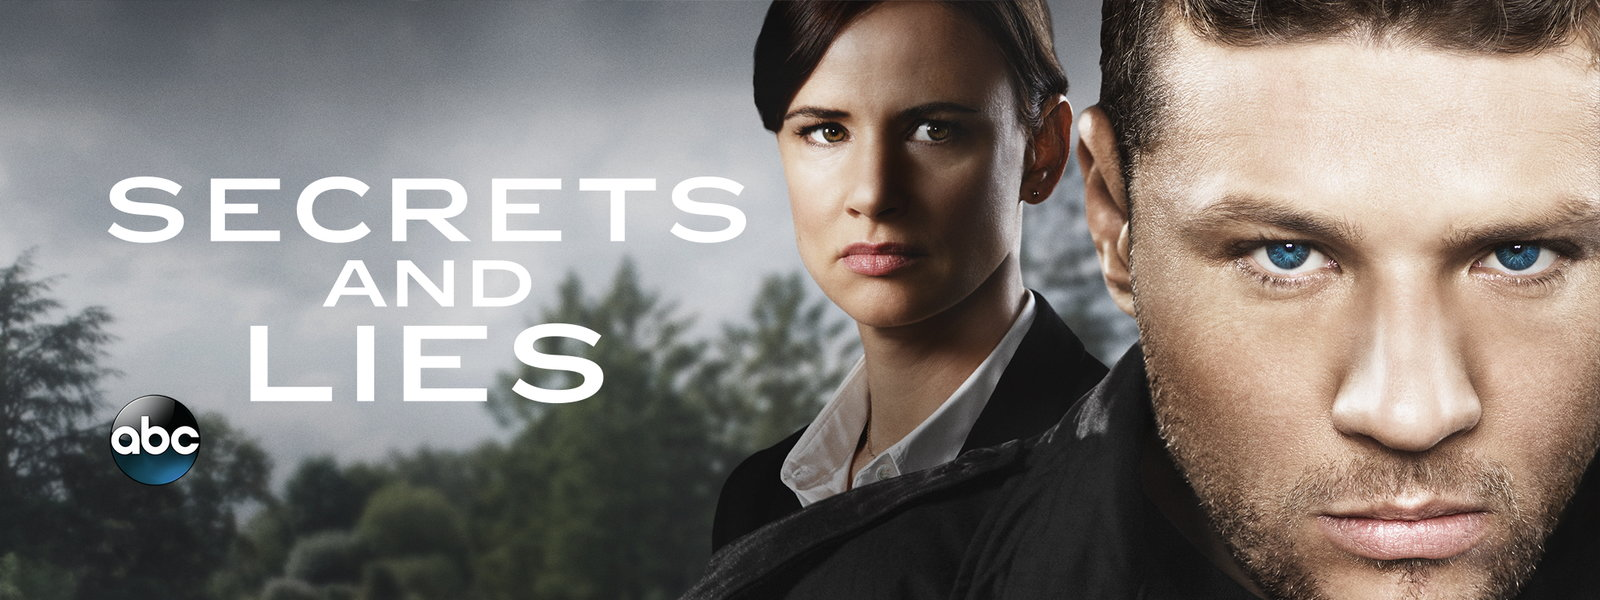 When Does Secrets and Lies Season 3 Start?